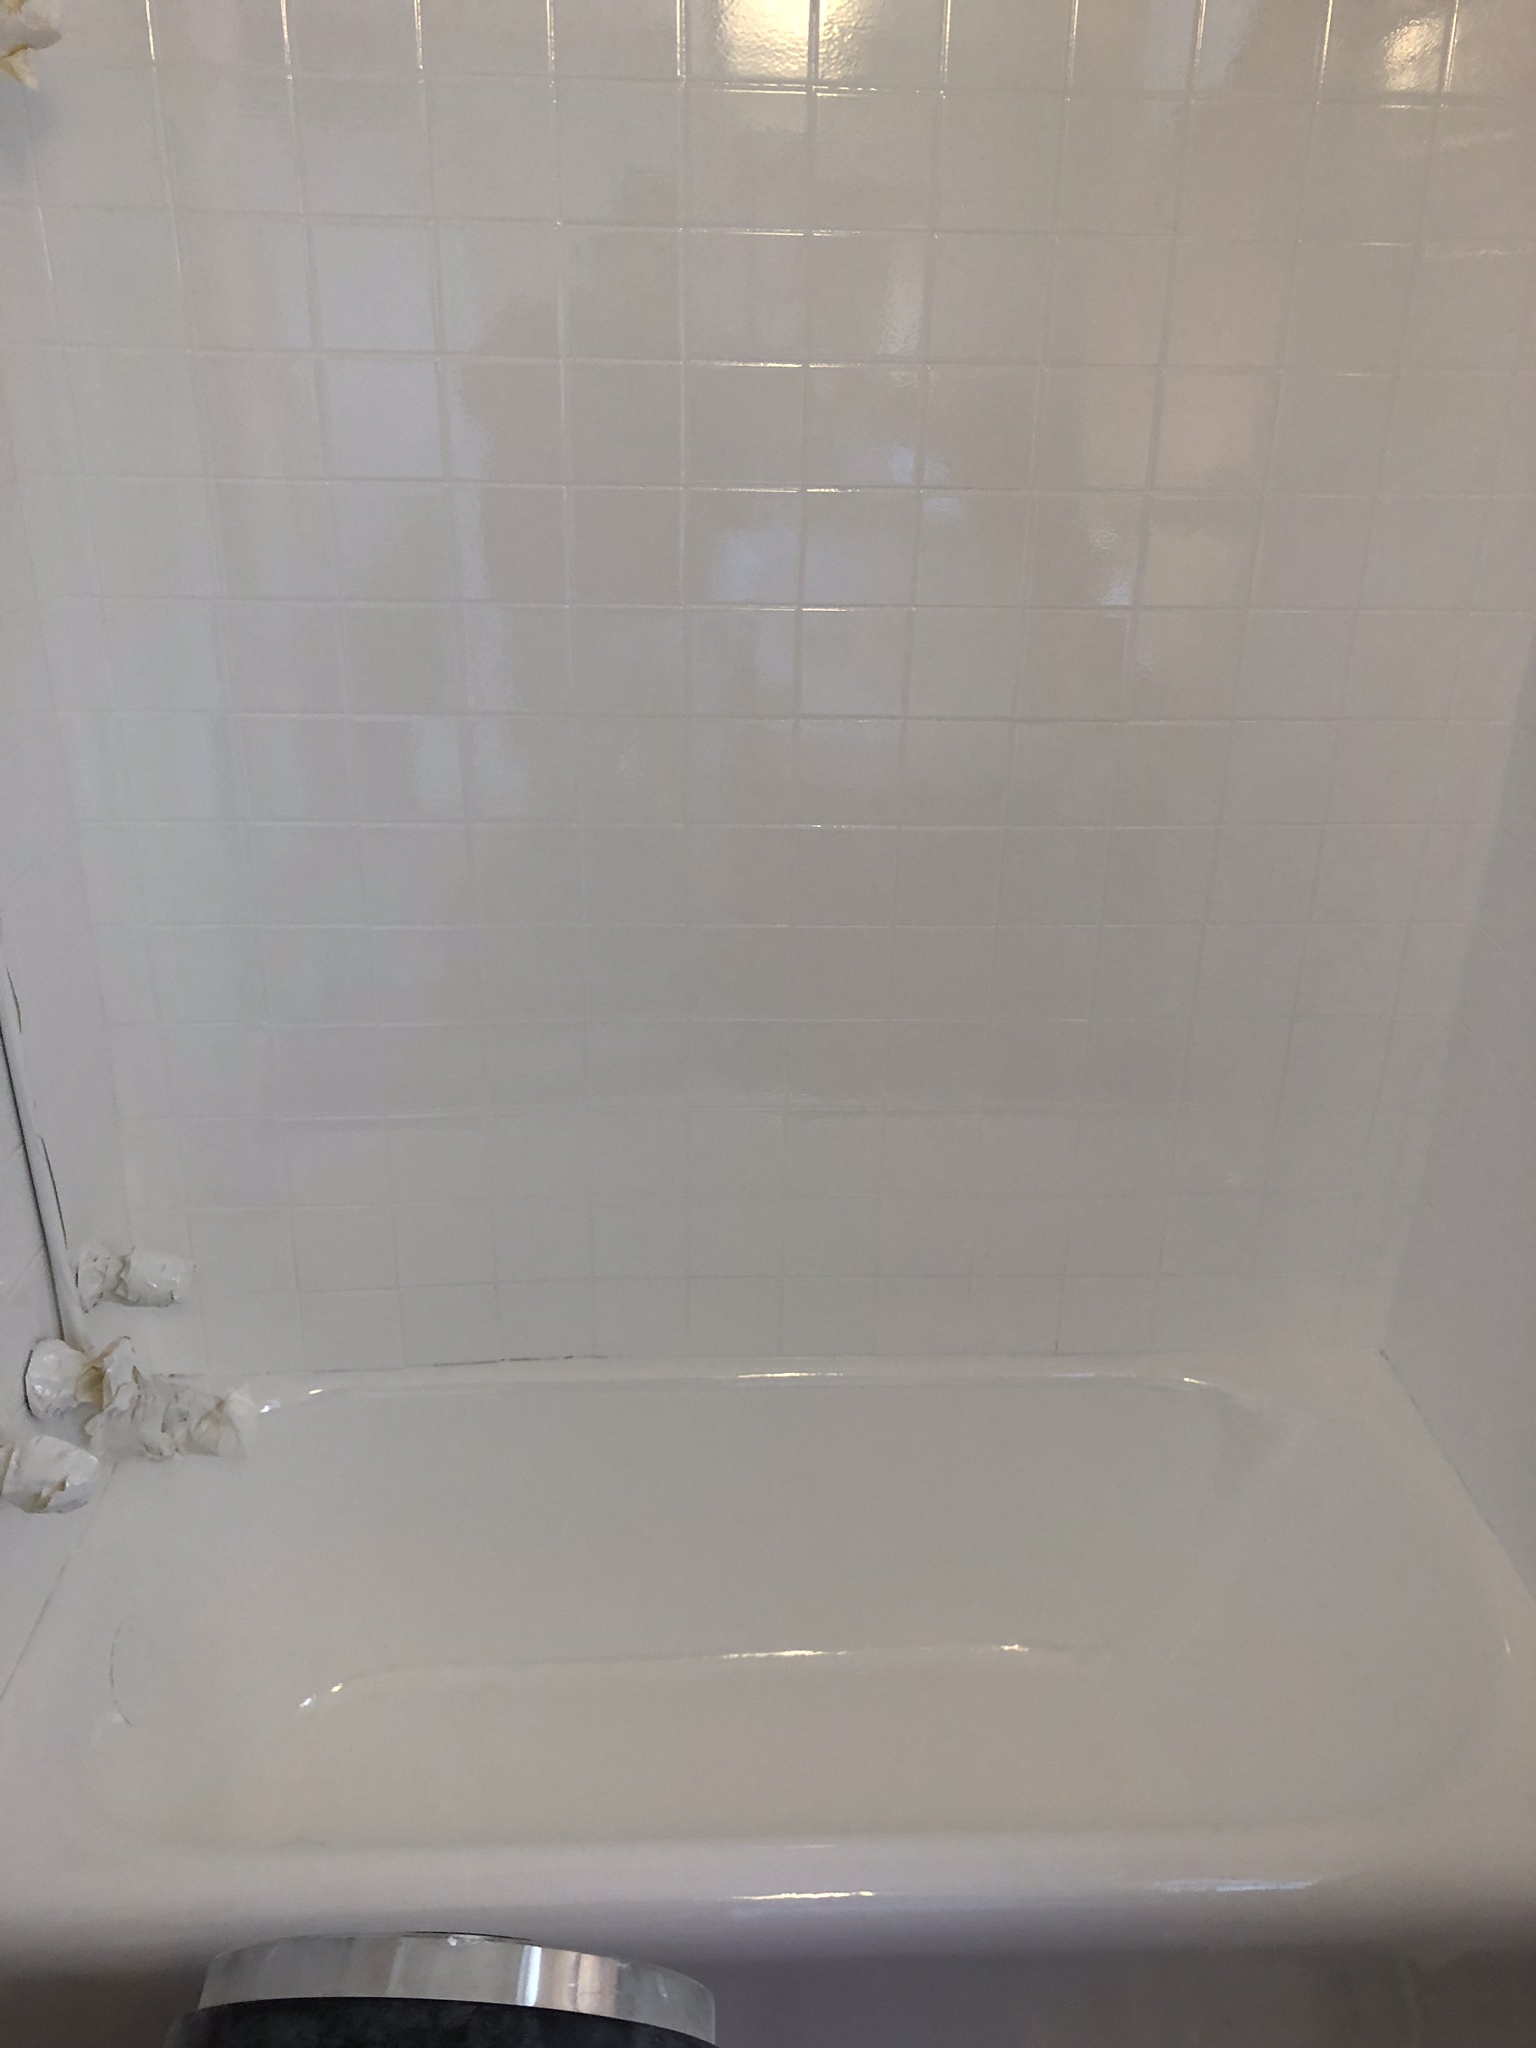 Step 3 High Gloss Mirror Finish for The Tub + Tile